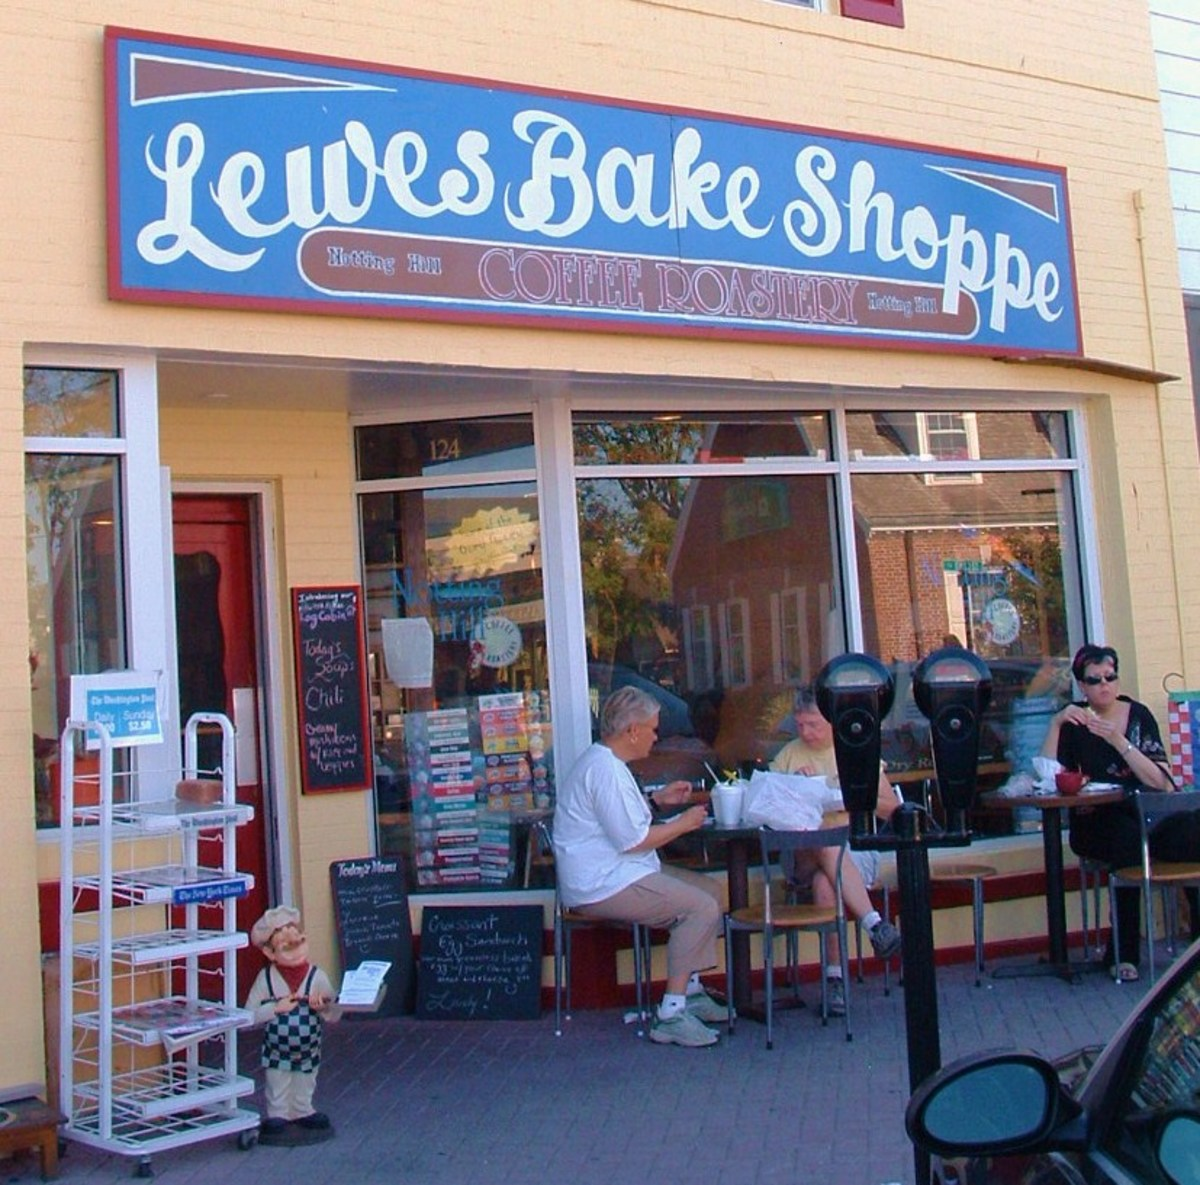 Lewes Bake Shoppe sells fabulous pastries, cookies and bread.